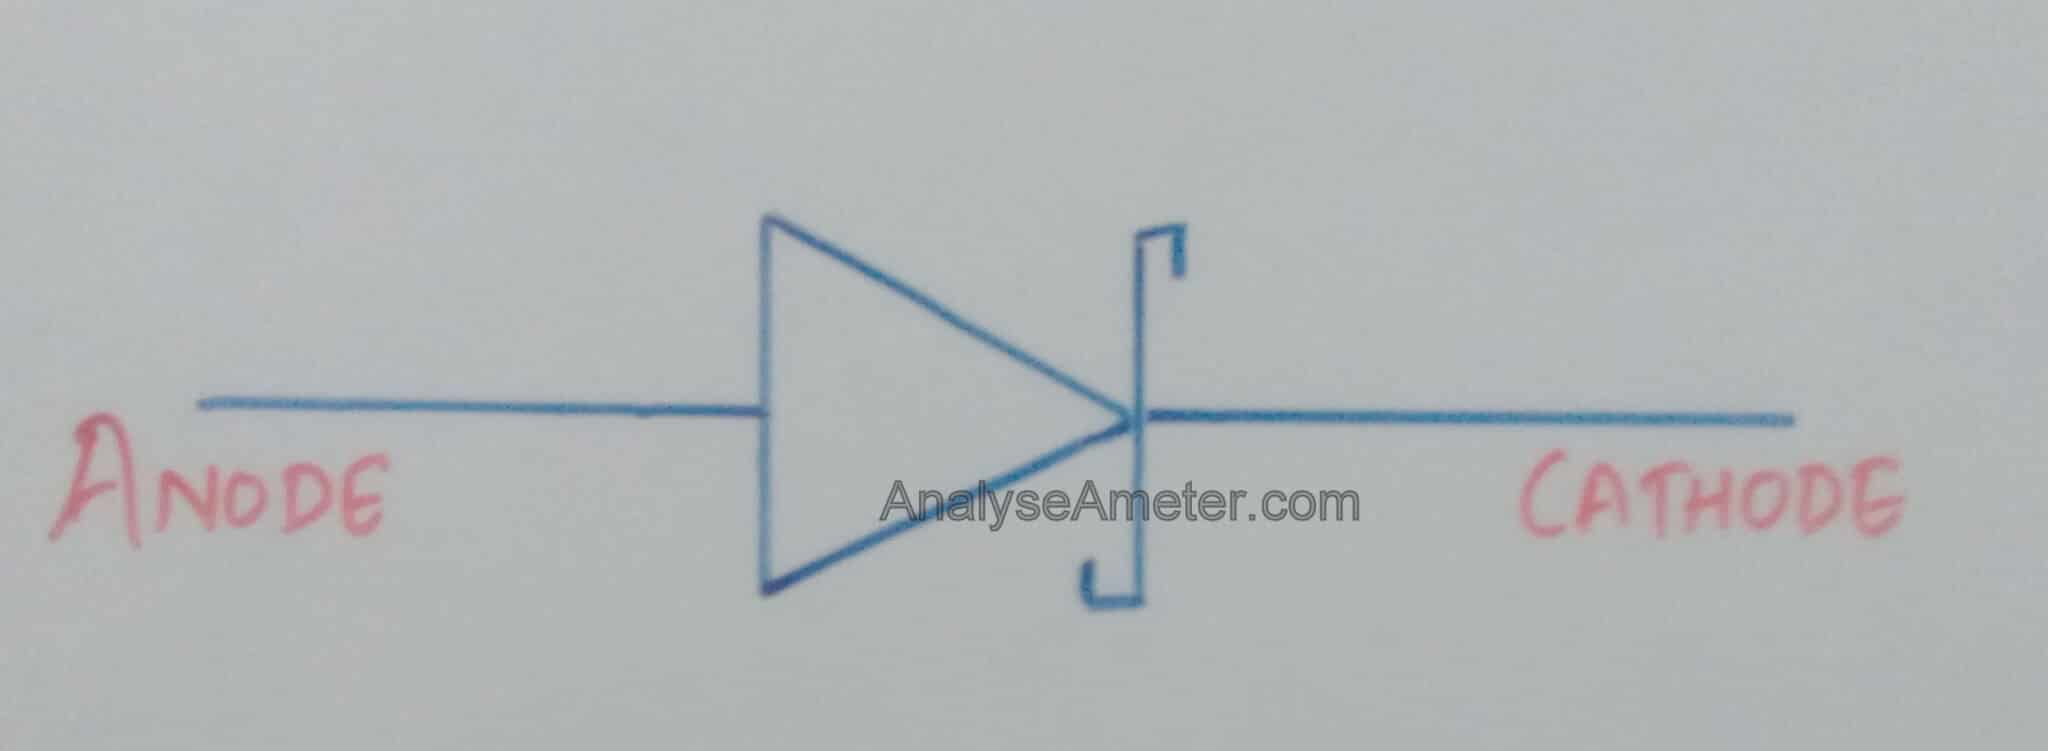 schottky diode image